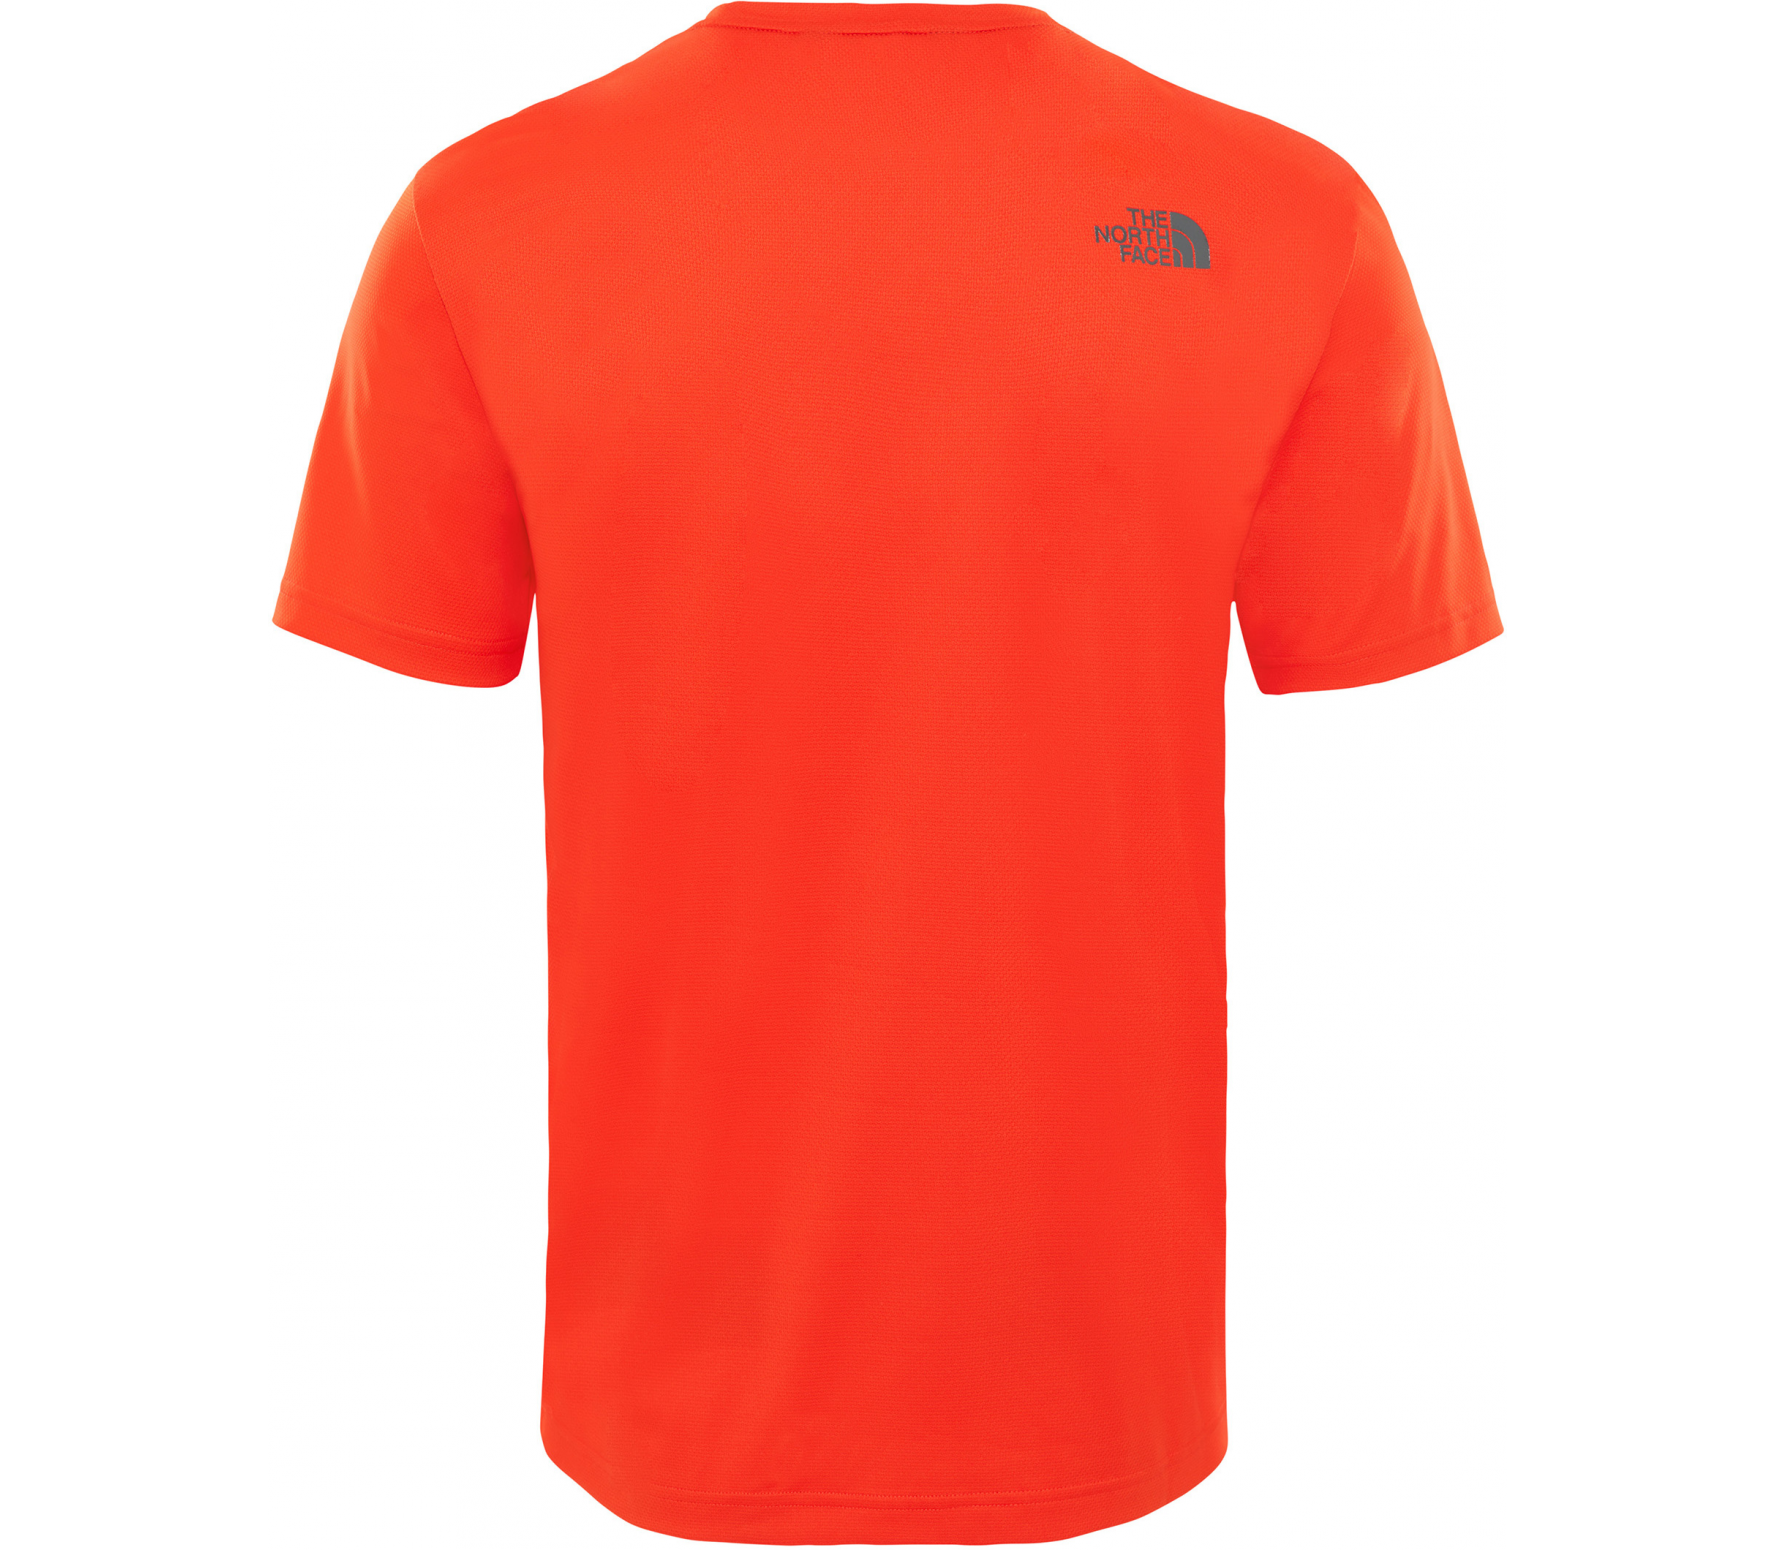 386d580a94e7f3 The North Face - Tanken Herren Funktionsshirt (rot) im Online Shop von  Keller Sports kaufen